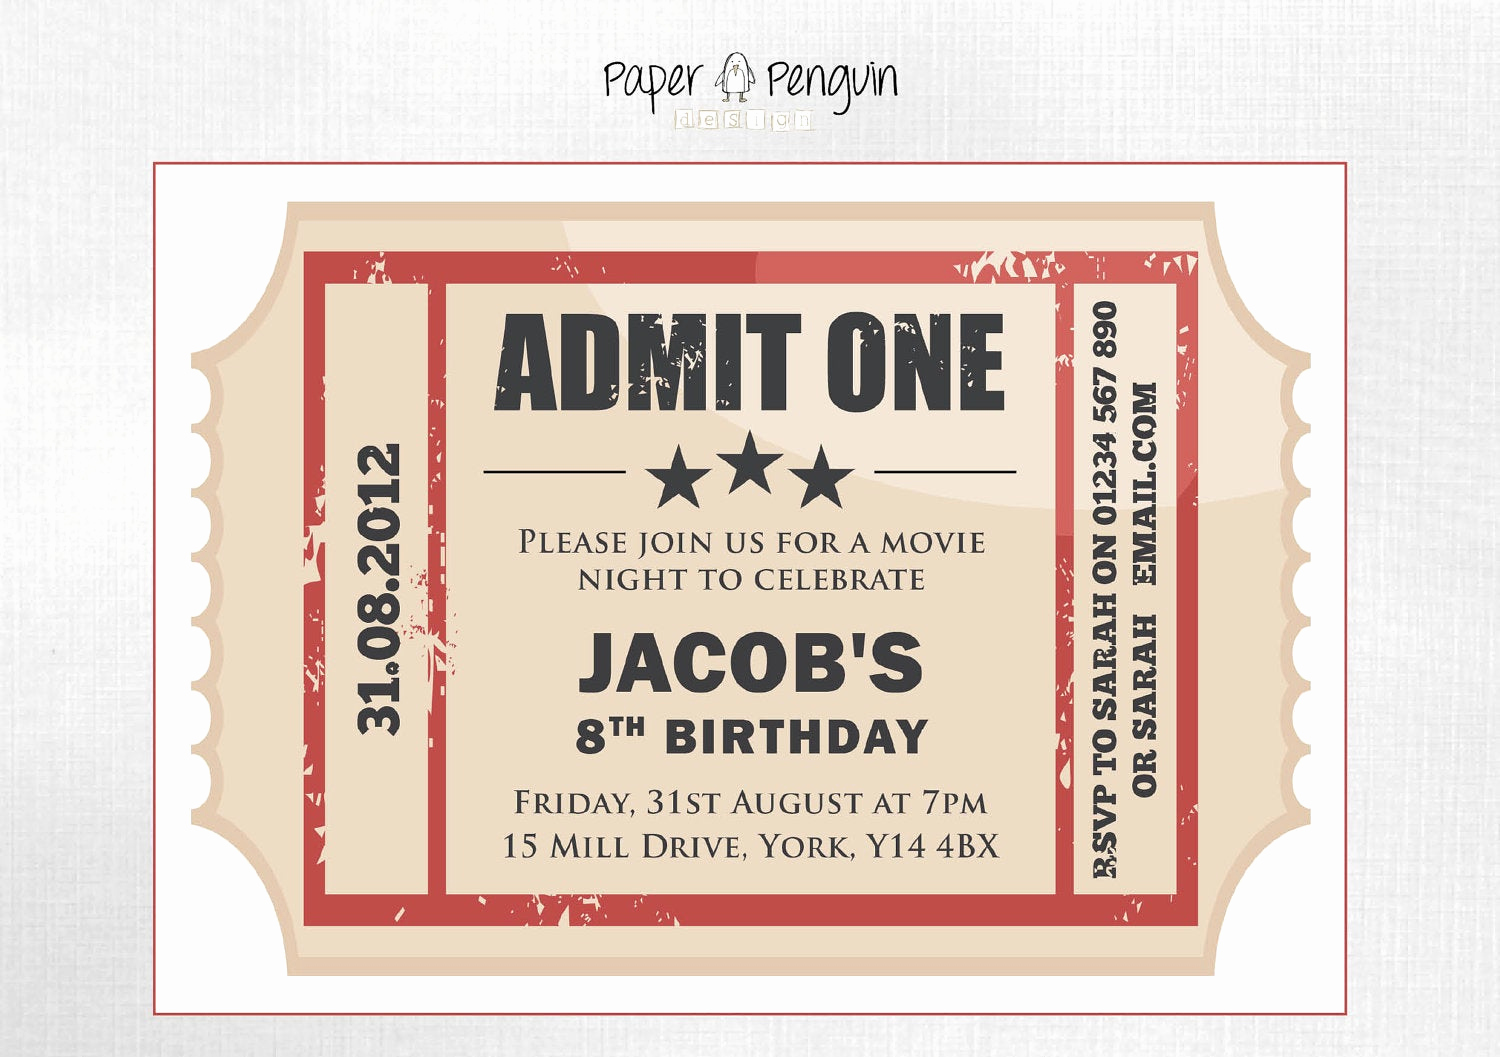 Movie Ticket Invitation Template Free Beautiful Personalized Kid S Movie Ticket Party by Paperpenguindesign